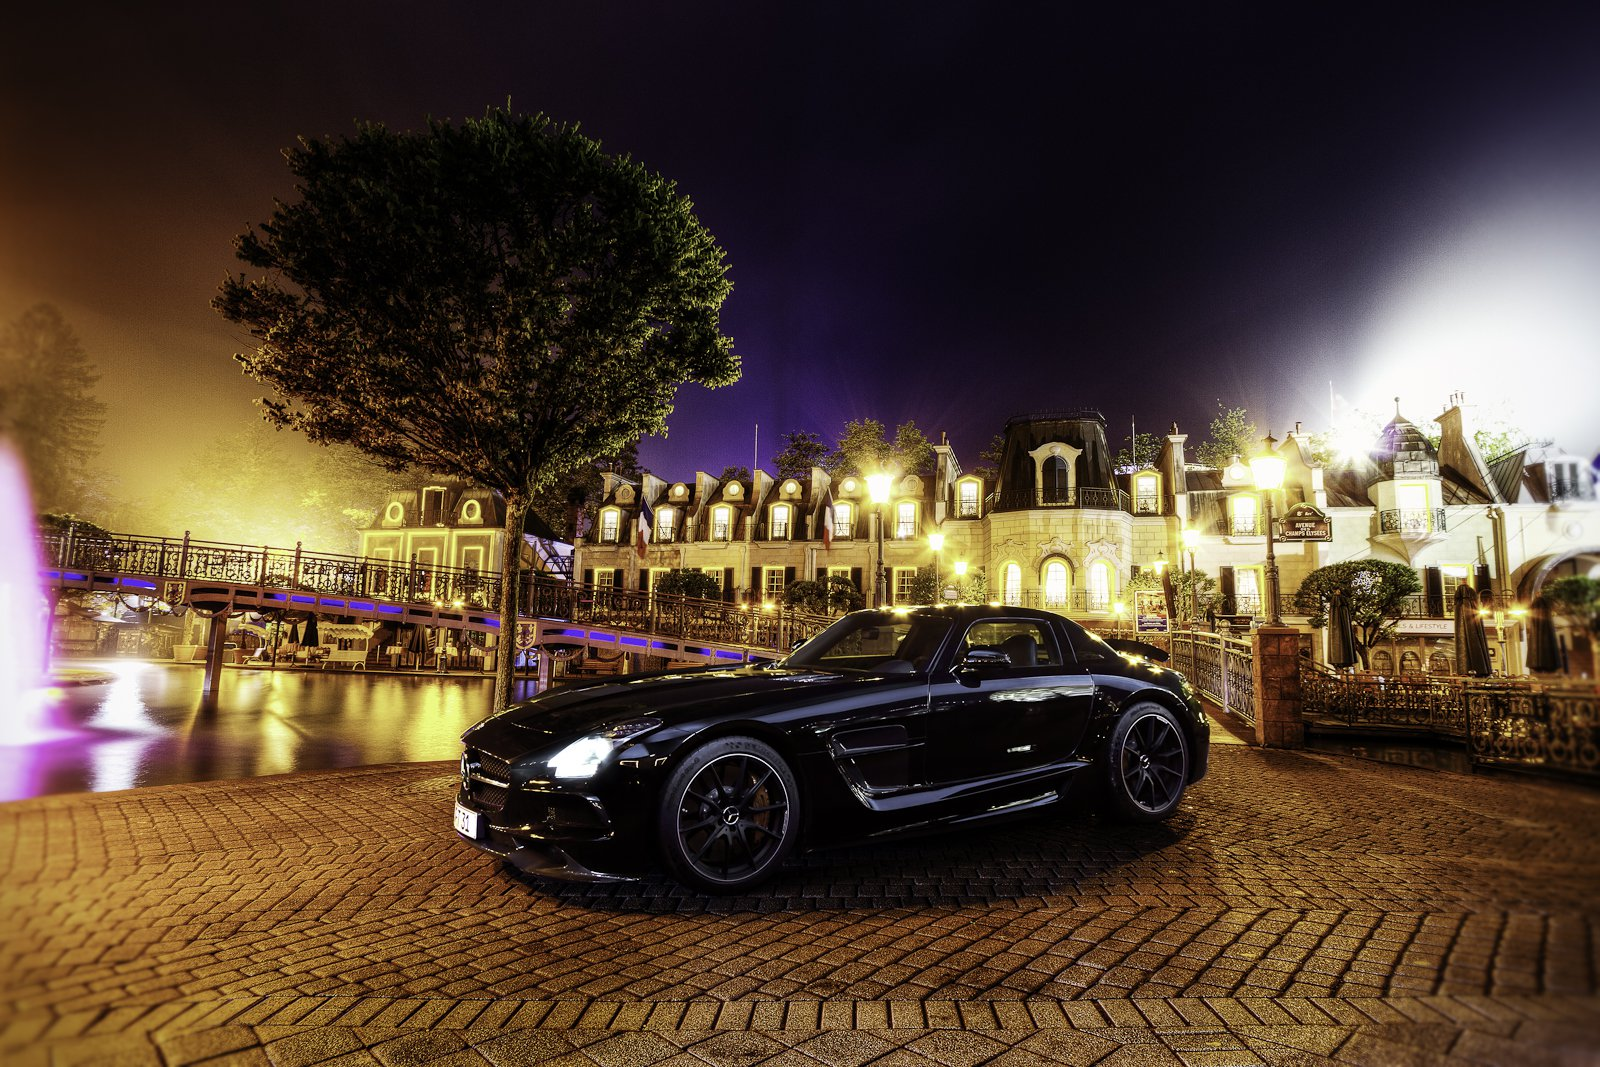 auto karta evrope 2014 Best of A Night at Europa Park with Mercedes Benz [Poll]   GTspirit auto karta evrope 2014